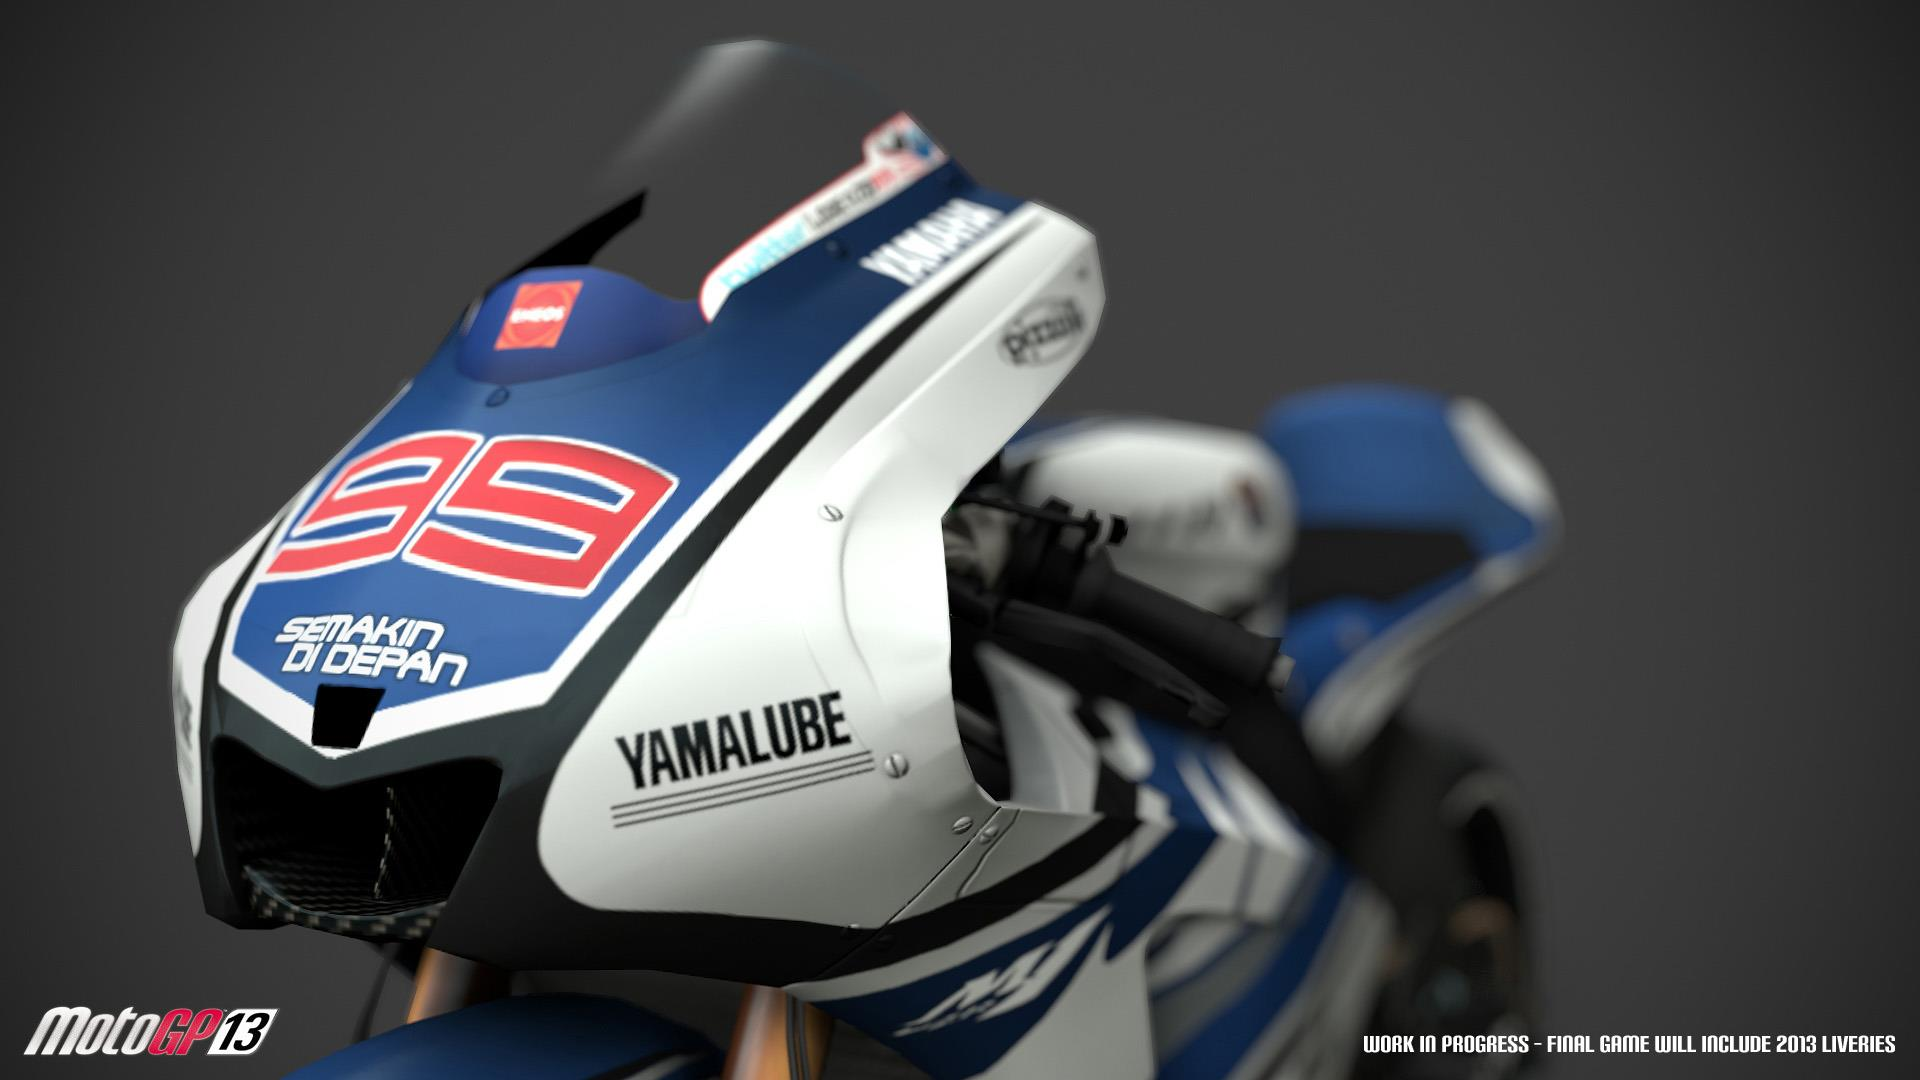 Milestone showcase detailed Yamaha bike models for MotoGP '13